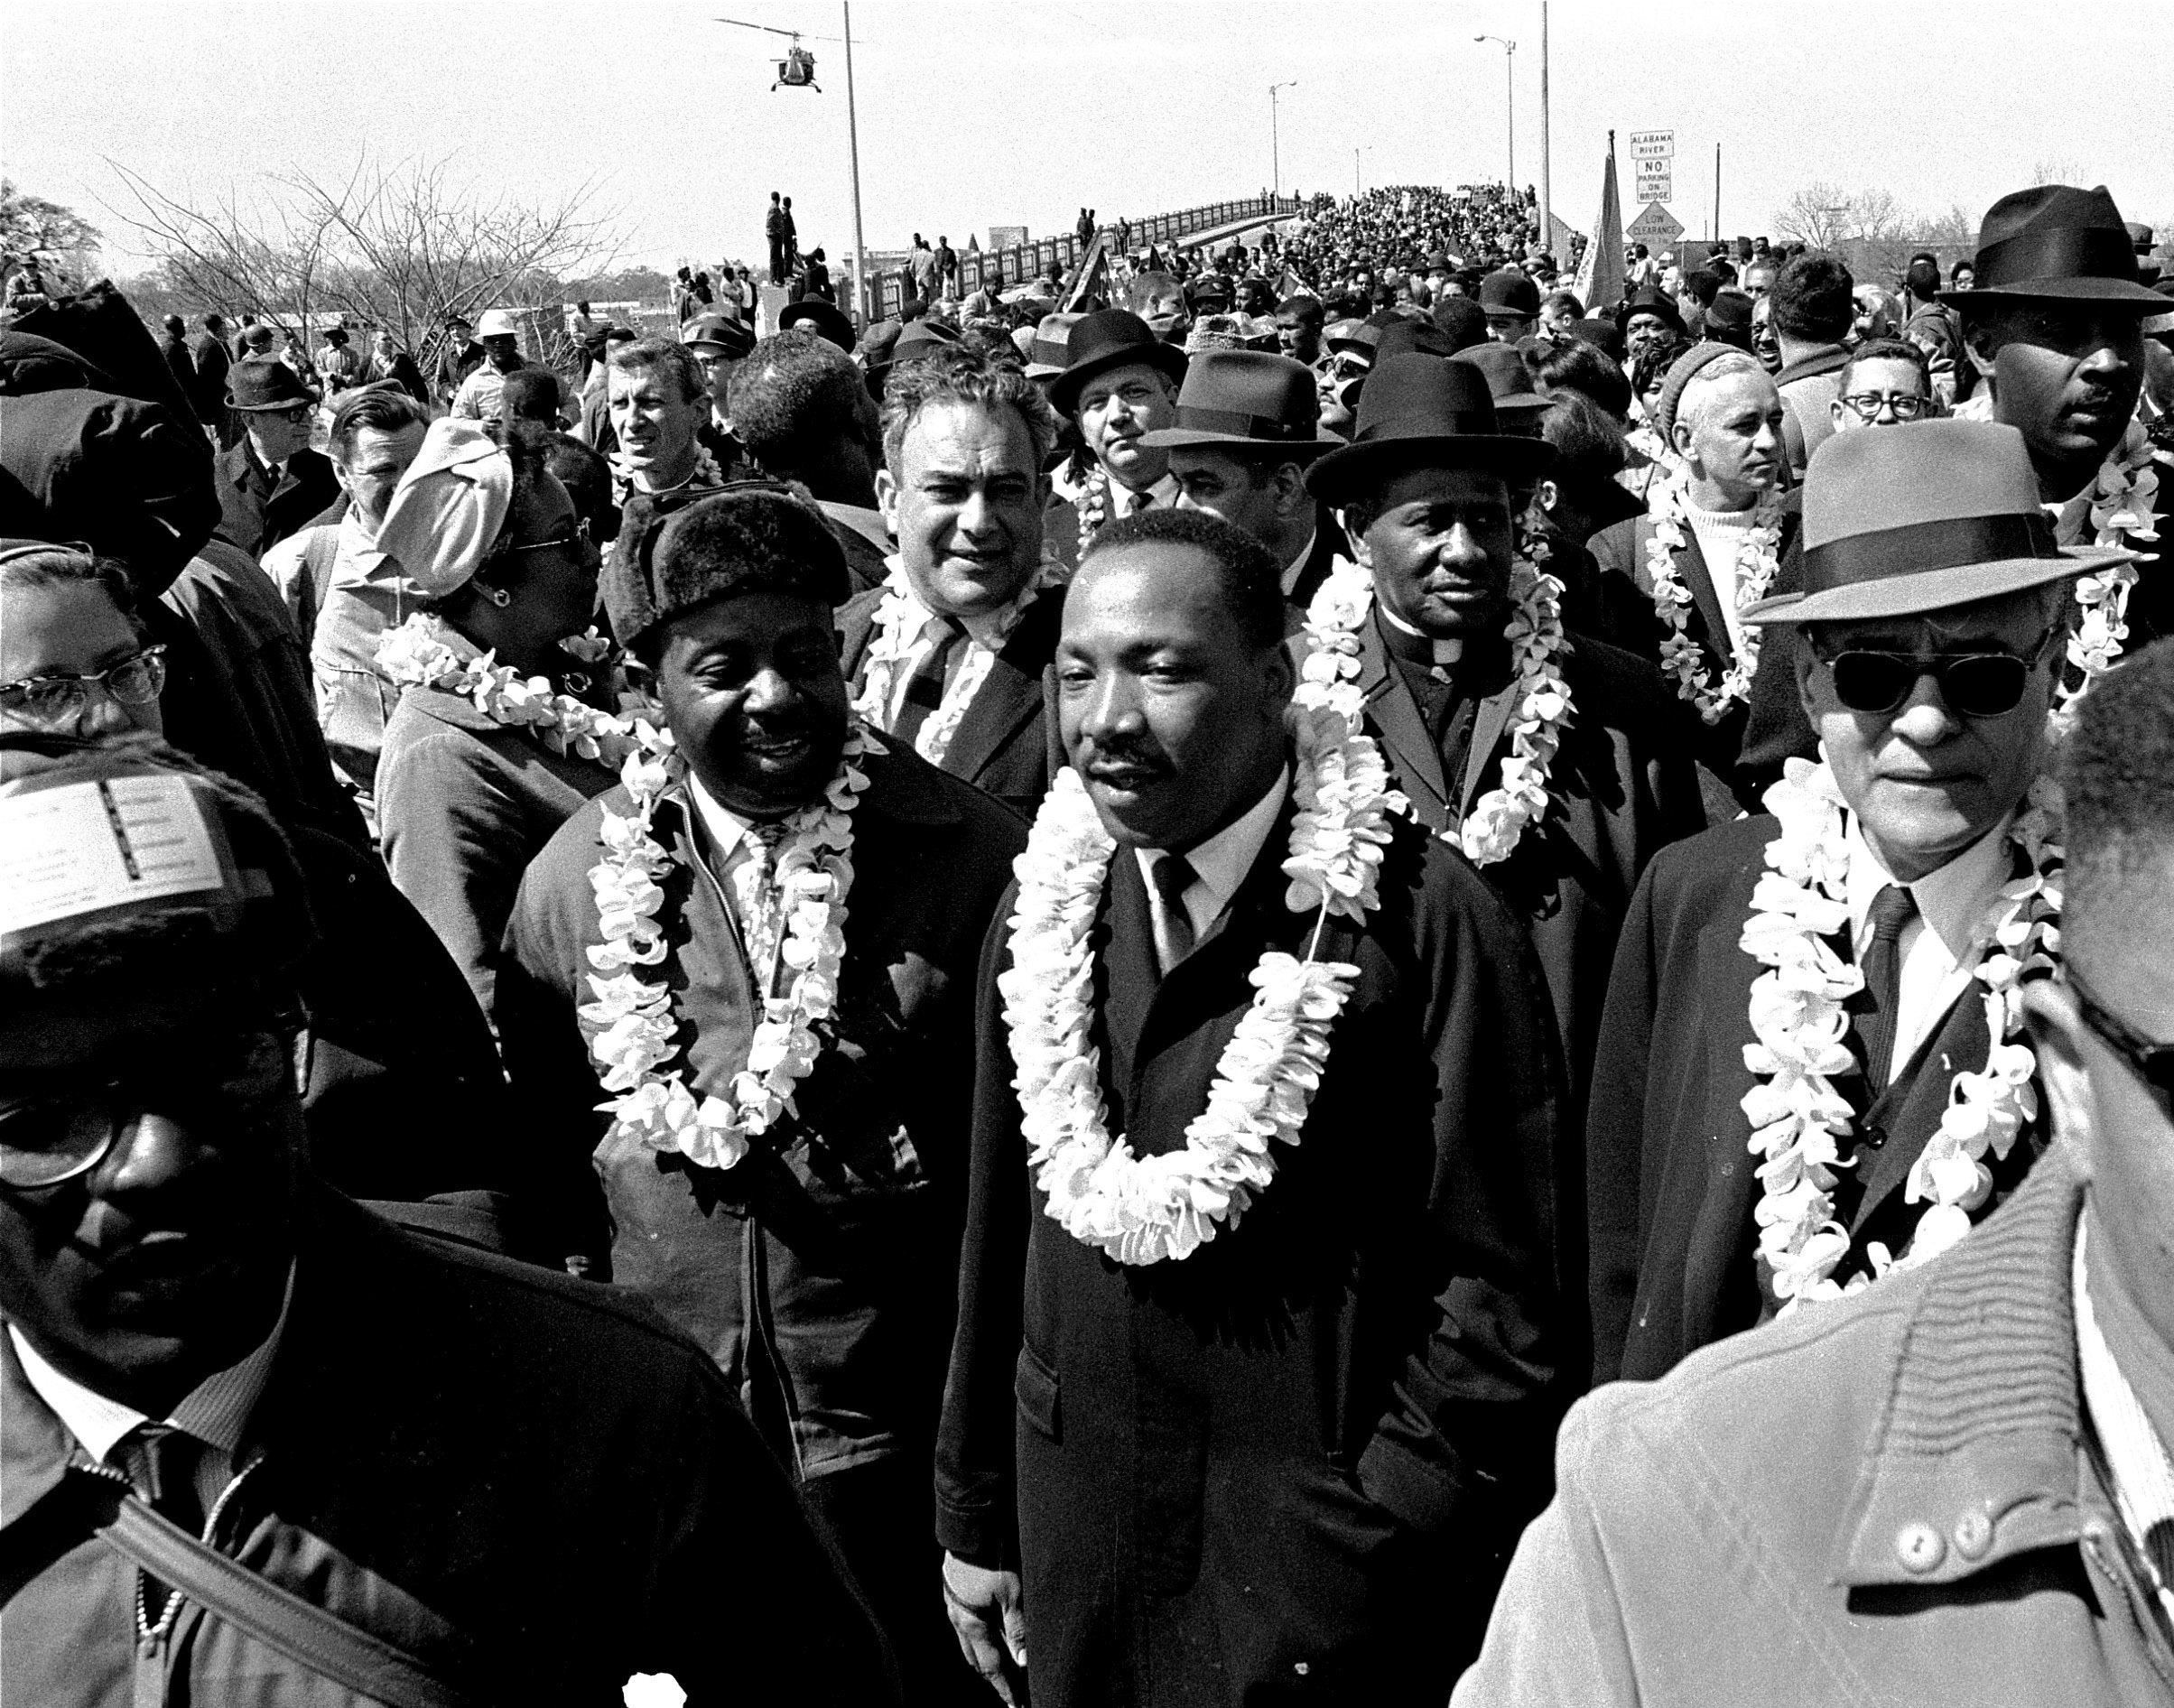 Vida y legado de Martin Luther King Jr. | ShareAmerica